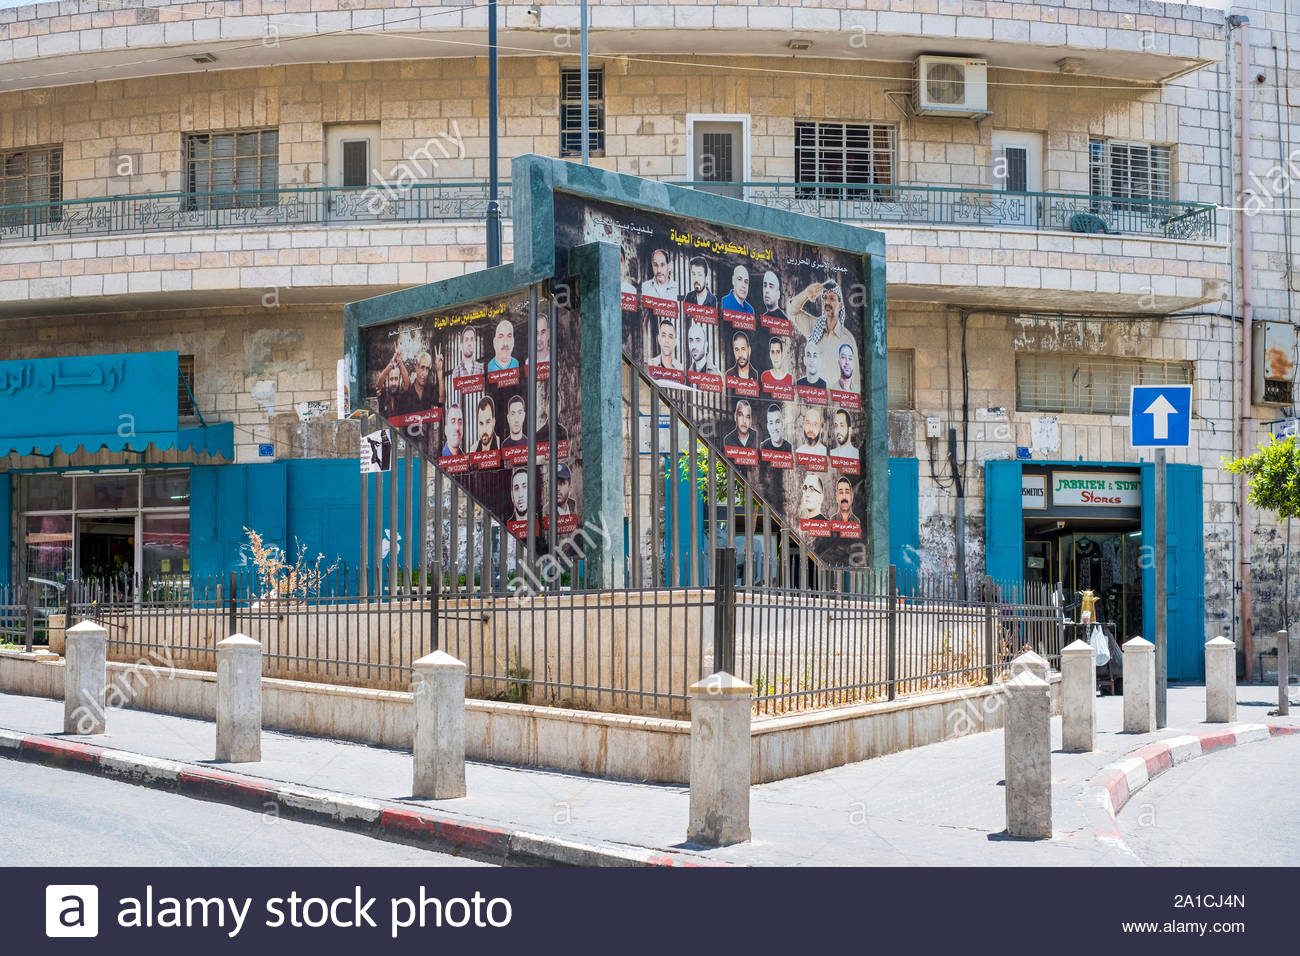 Palestine, West Bank, Bethlehem. Posters memorializing Palestinian freedom fighters, martyrs. Stock Photo